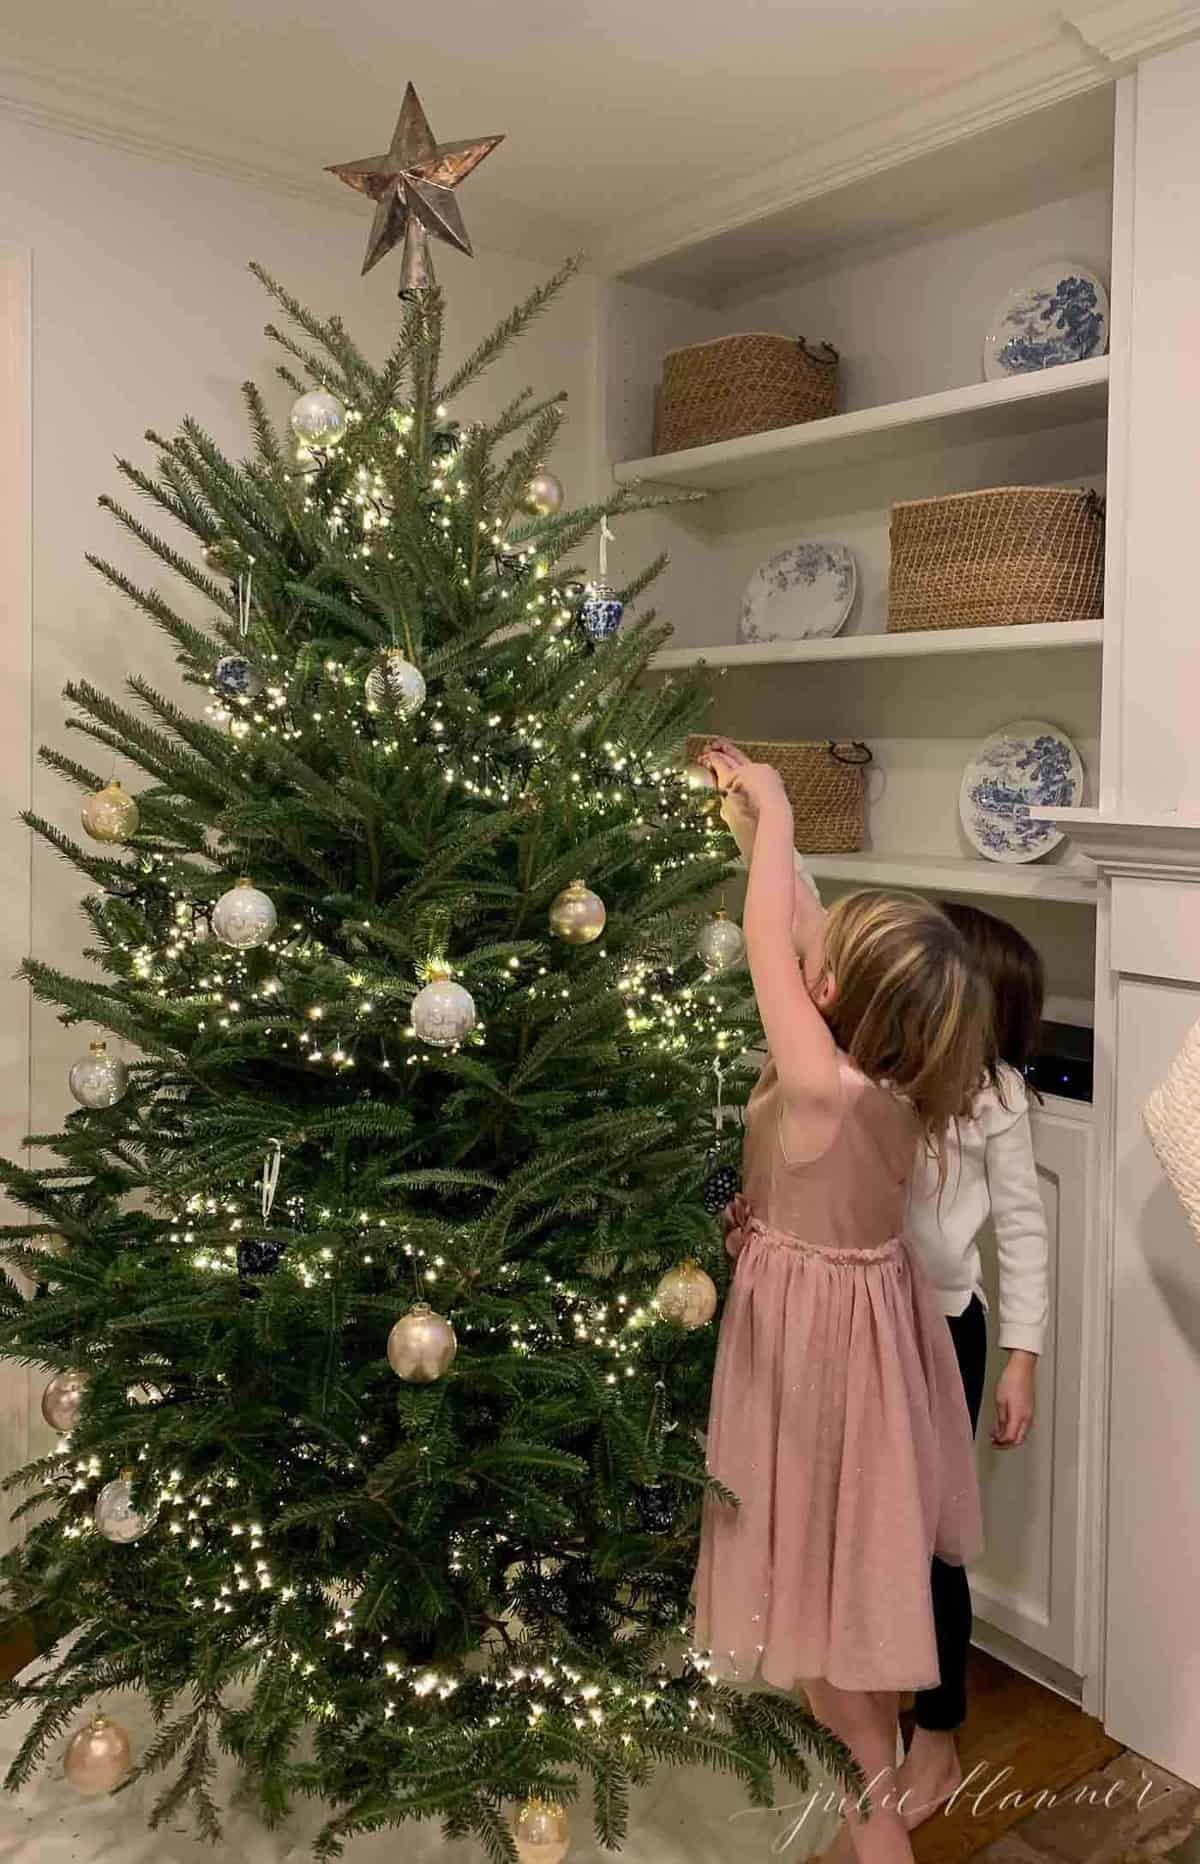 Little girls decorating a Christmas tree